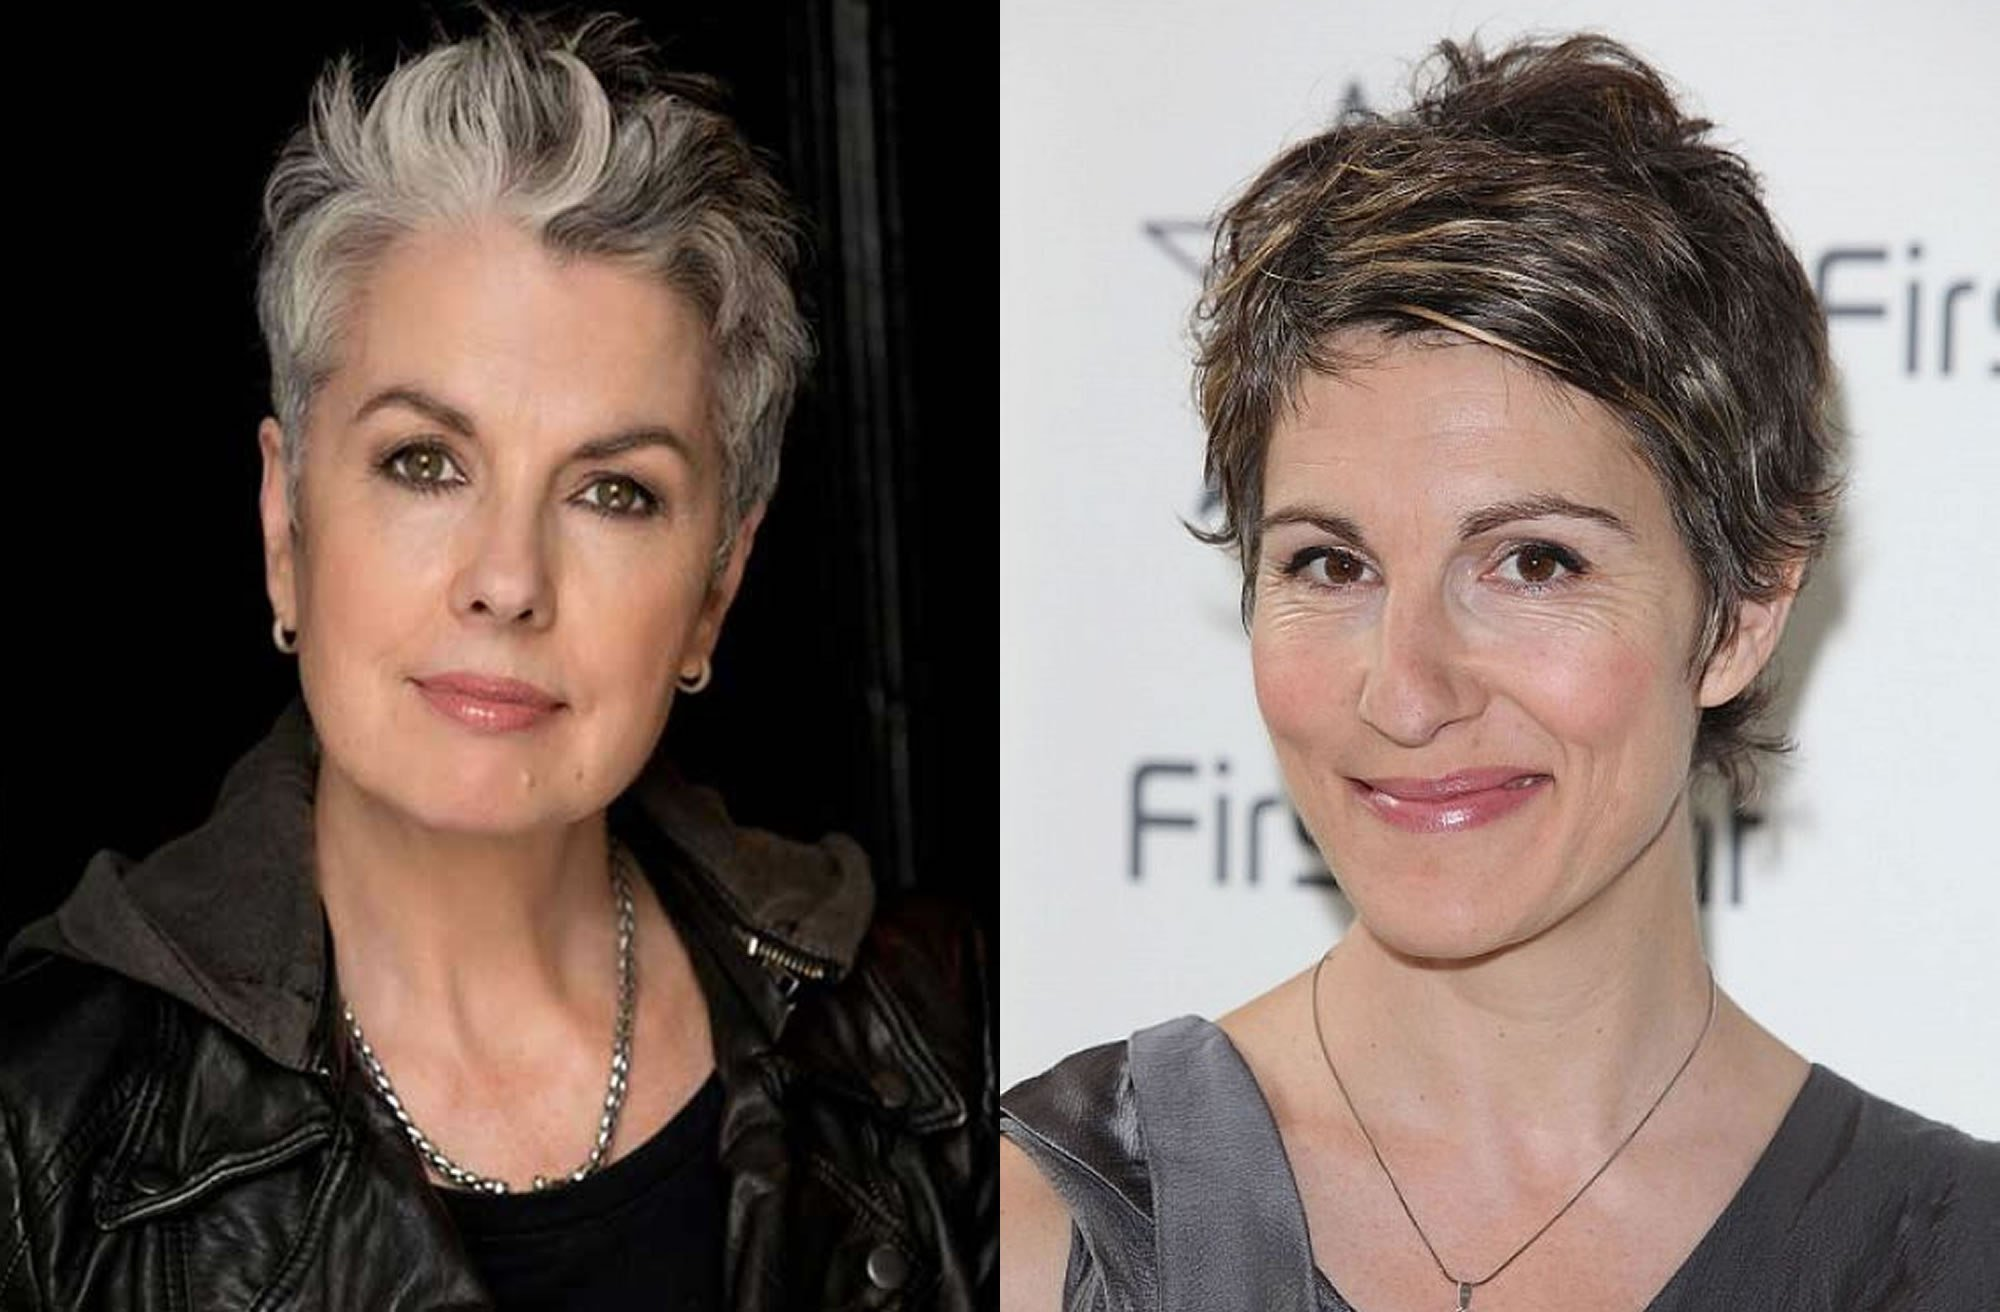 The Best Short Pixie Haircut And Hairstyles For Older Women For Pictures